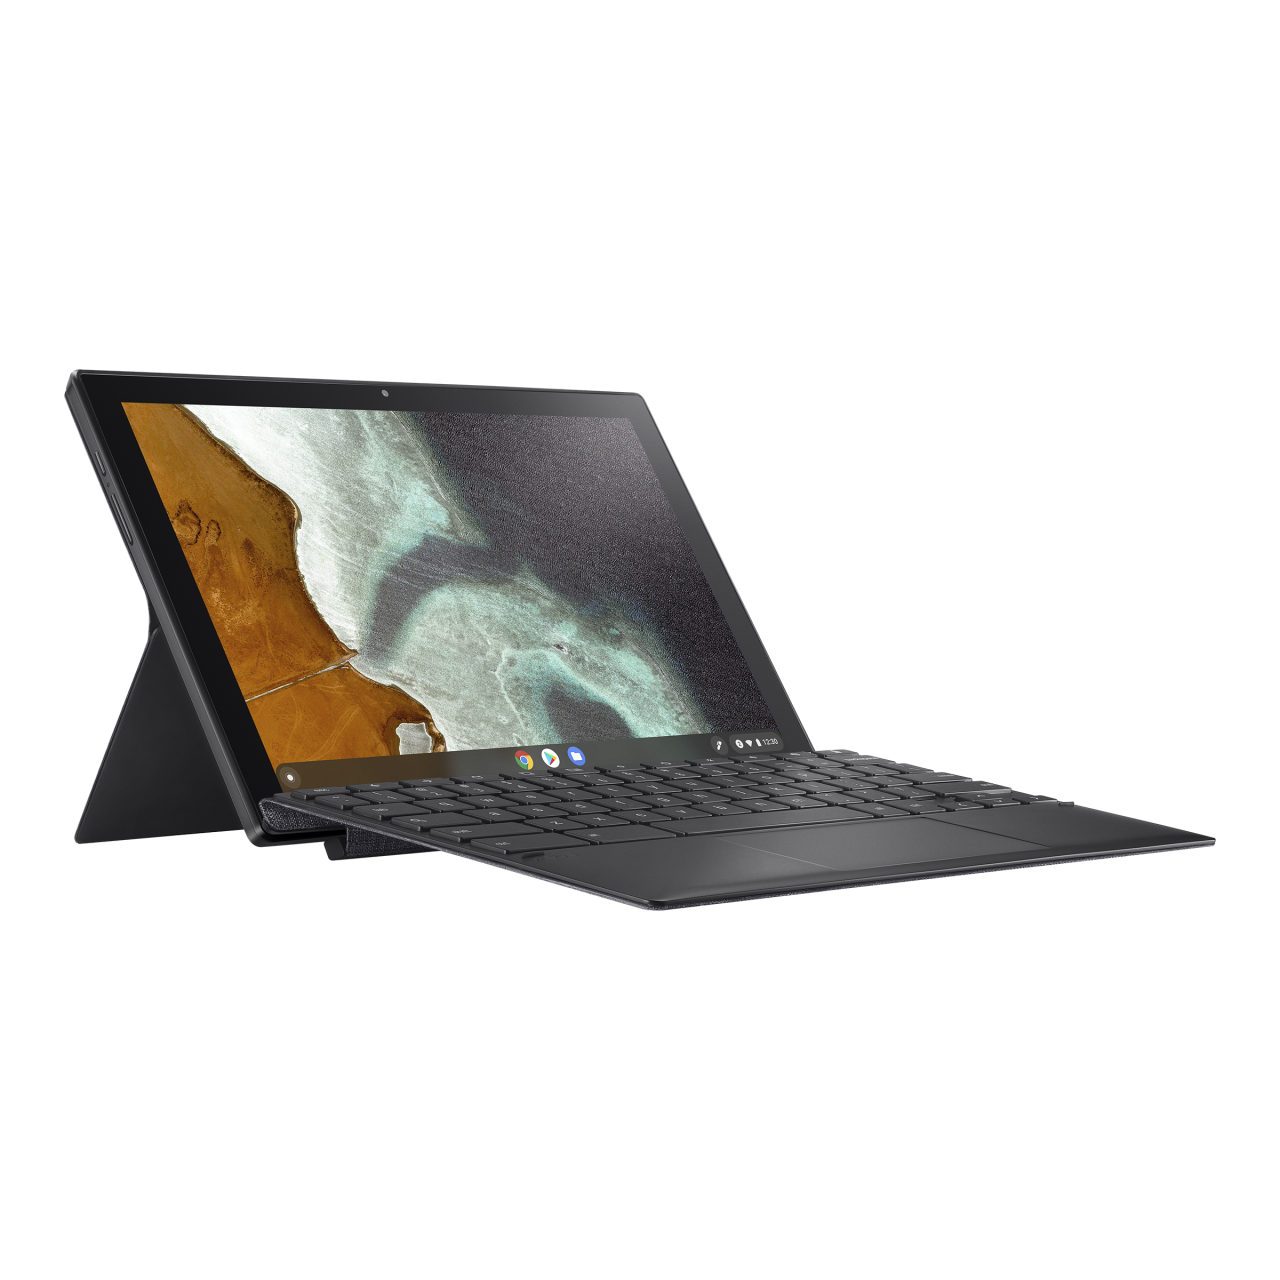 ASUS Chromebook Detachable タブレット